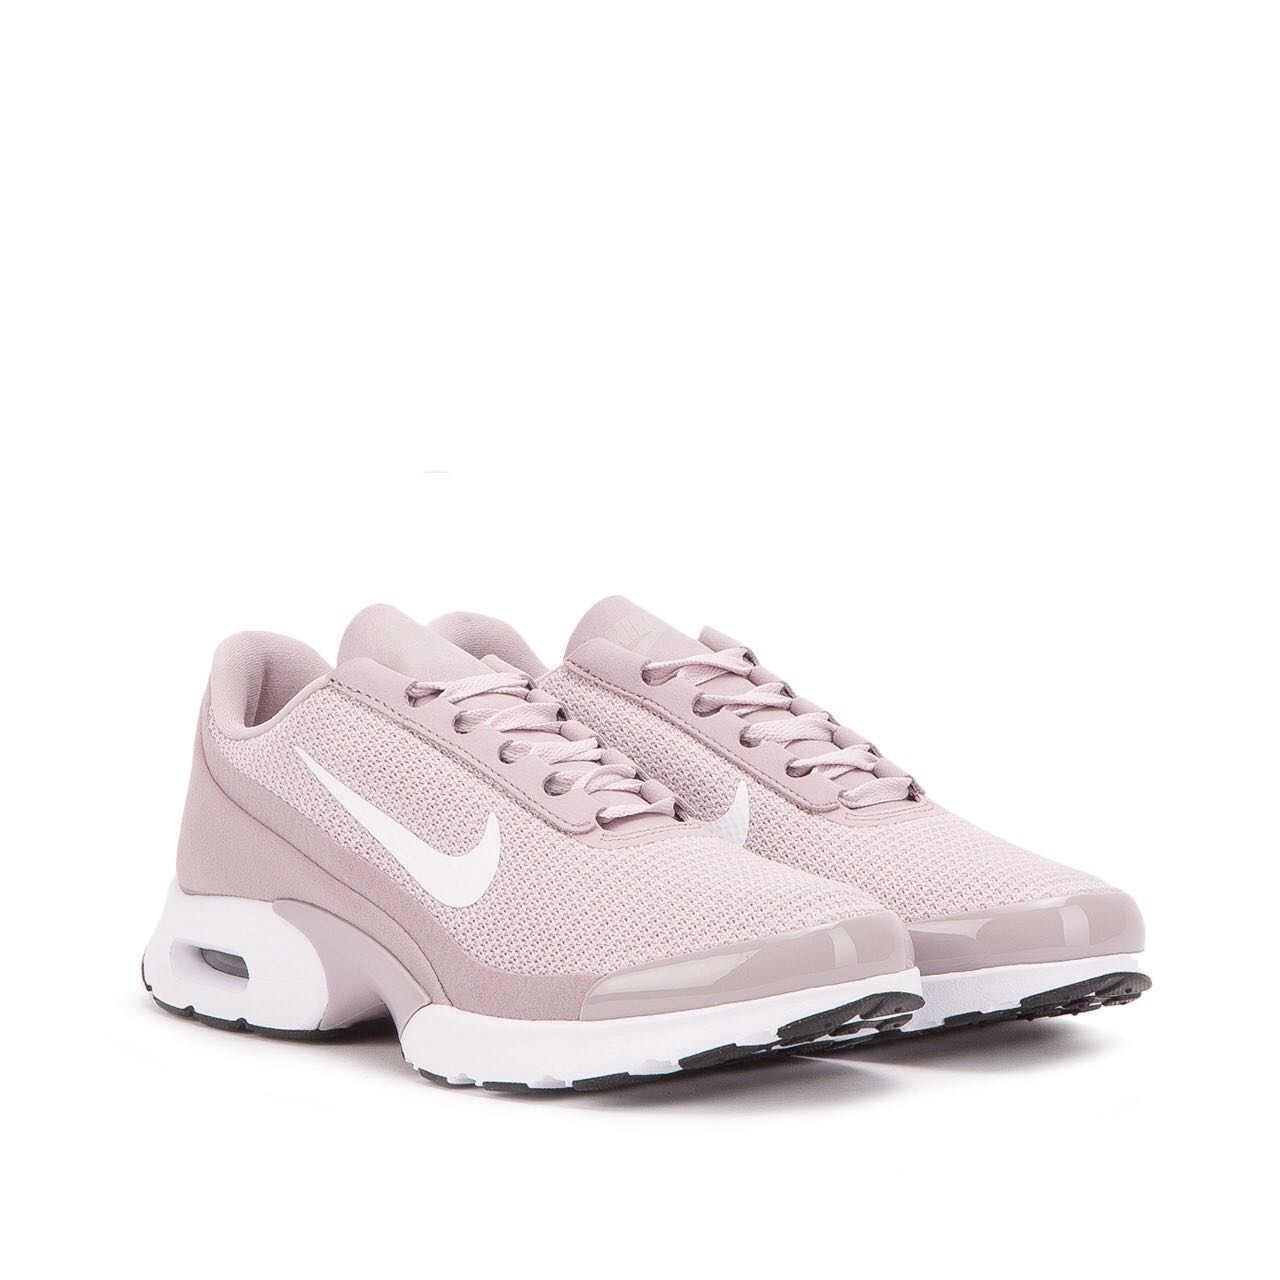 buy online fa2cf 21148 Nike air max jewell pink rose white, Women s Fashion, Shoes ...